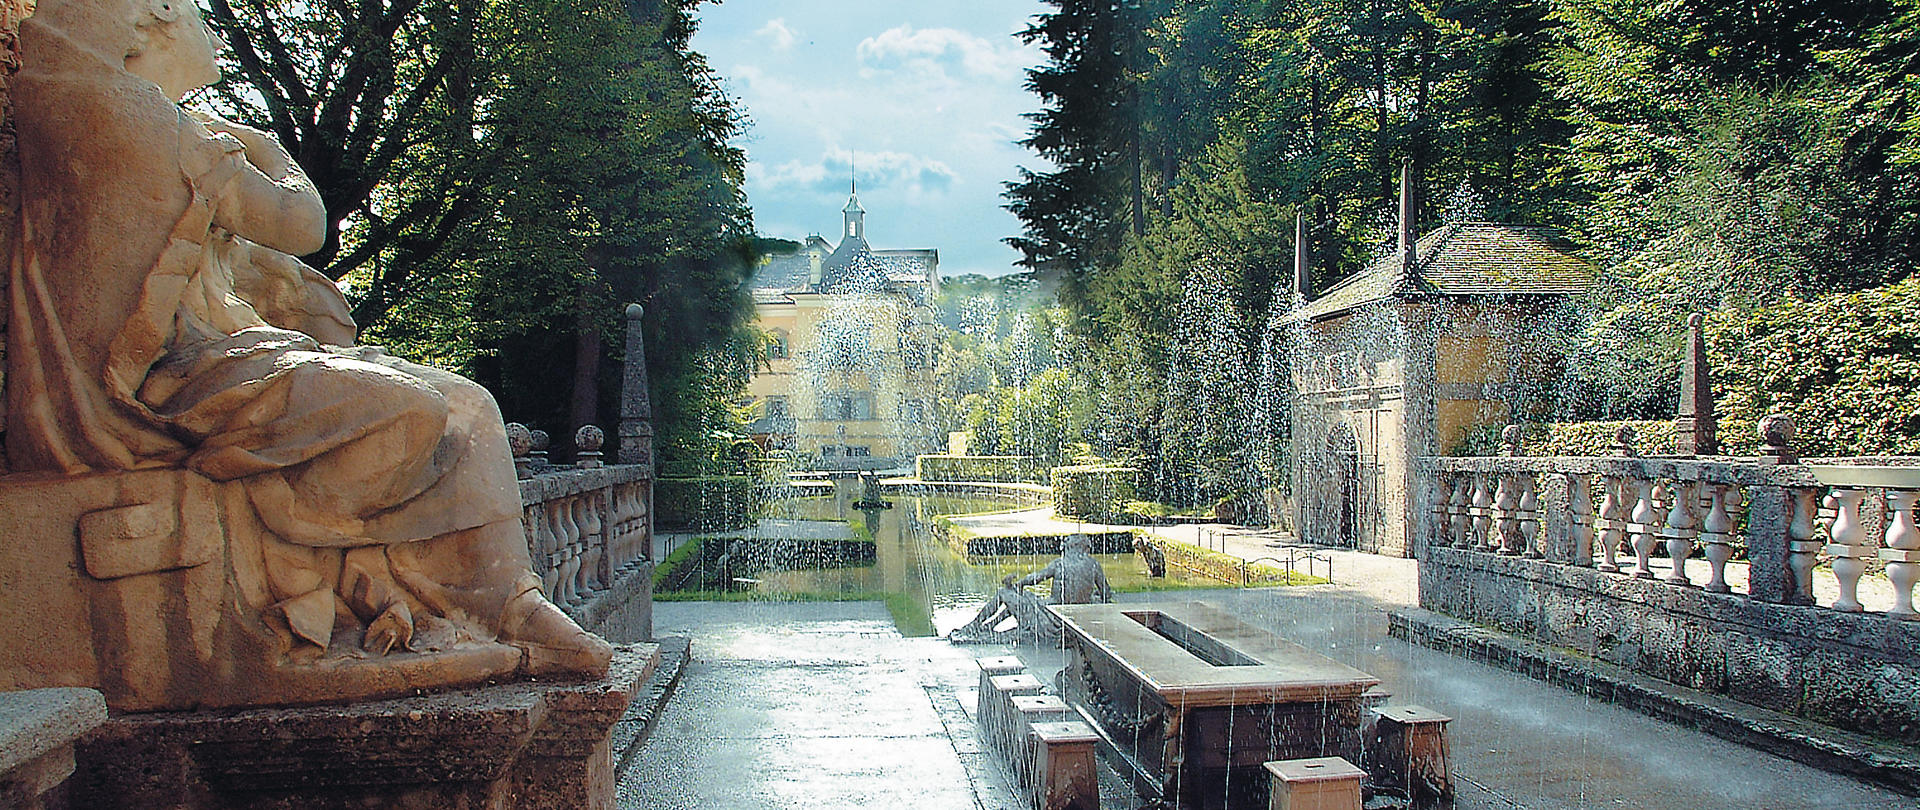 Hellbrunn Castle and Trick Fountains